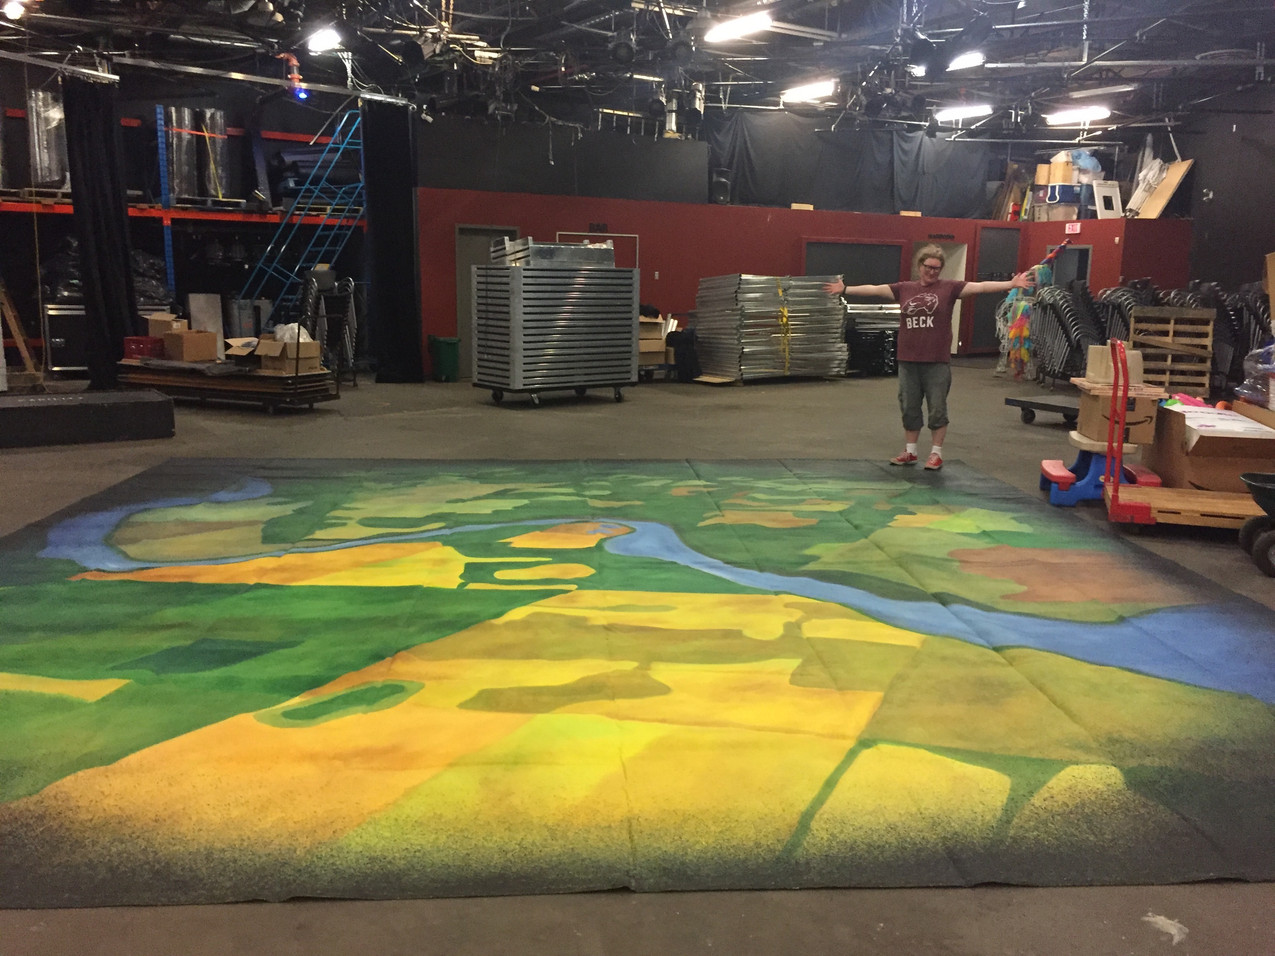 Preparing a new version of the set to tour. New floor cloth painted by Nicole Diebert.